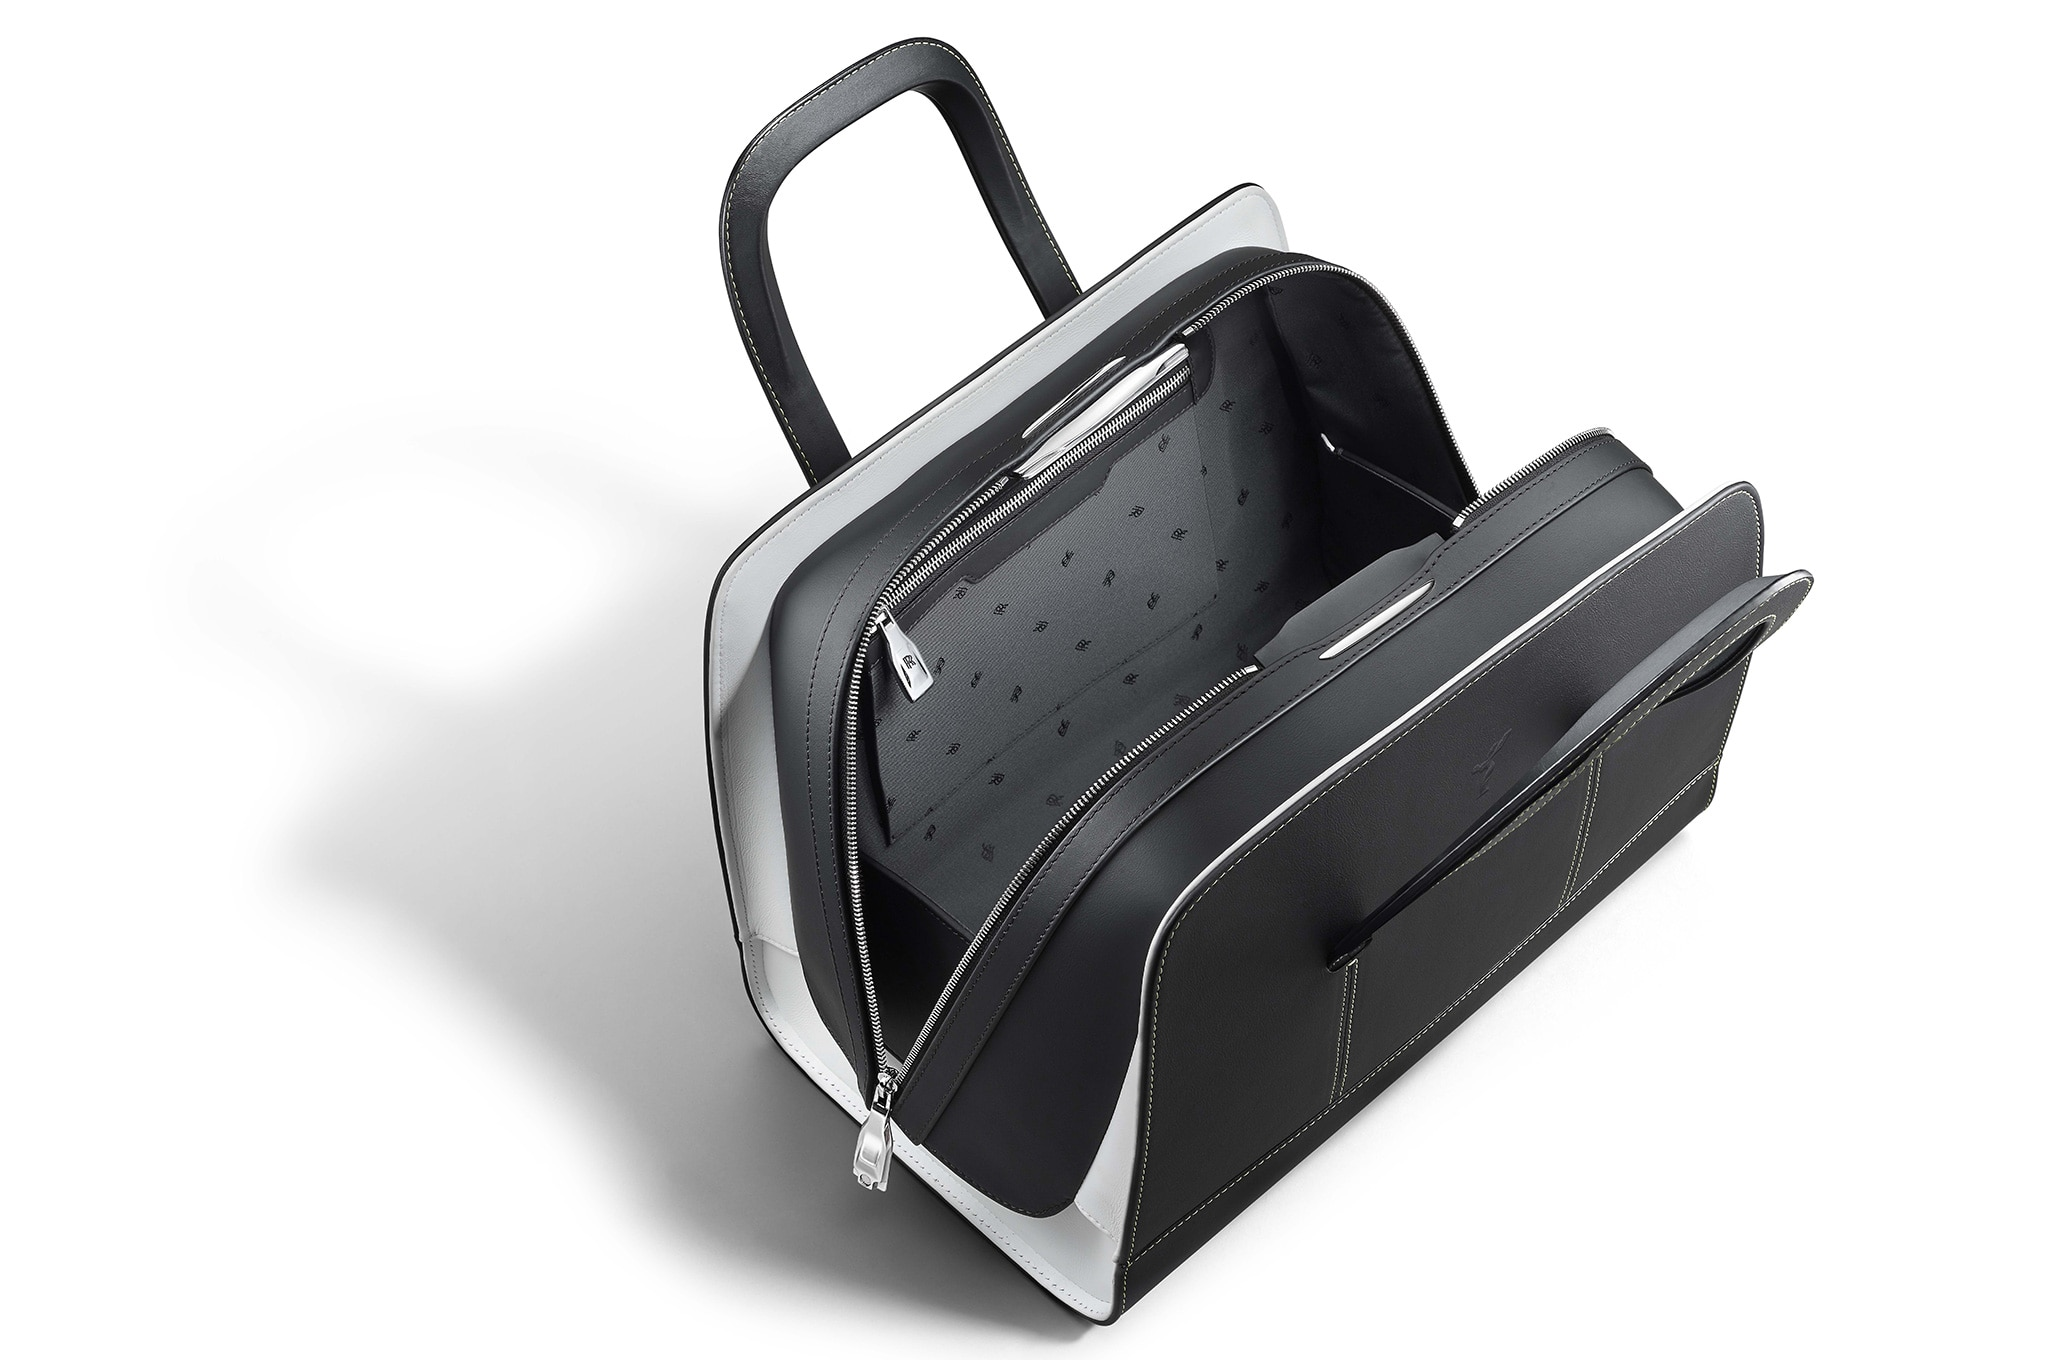 Rolls-Royce Launches $45,854 Carbon-Fiber Luggage Set for ...